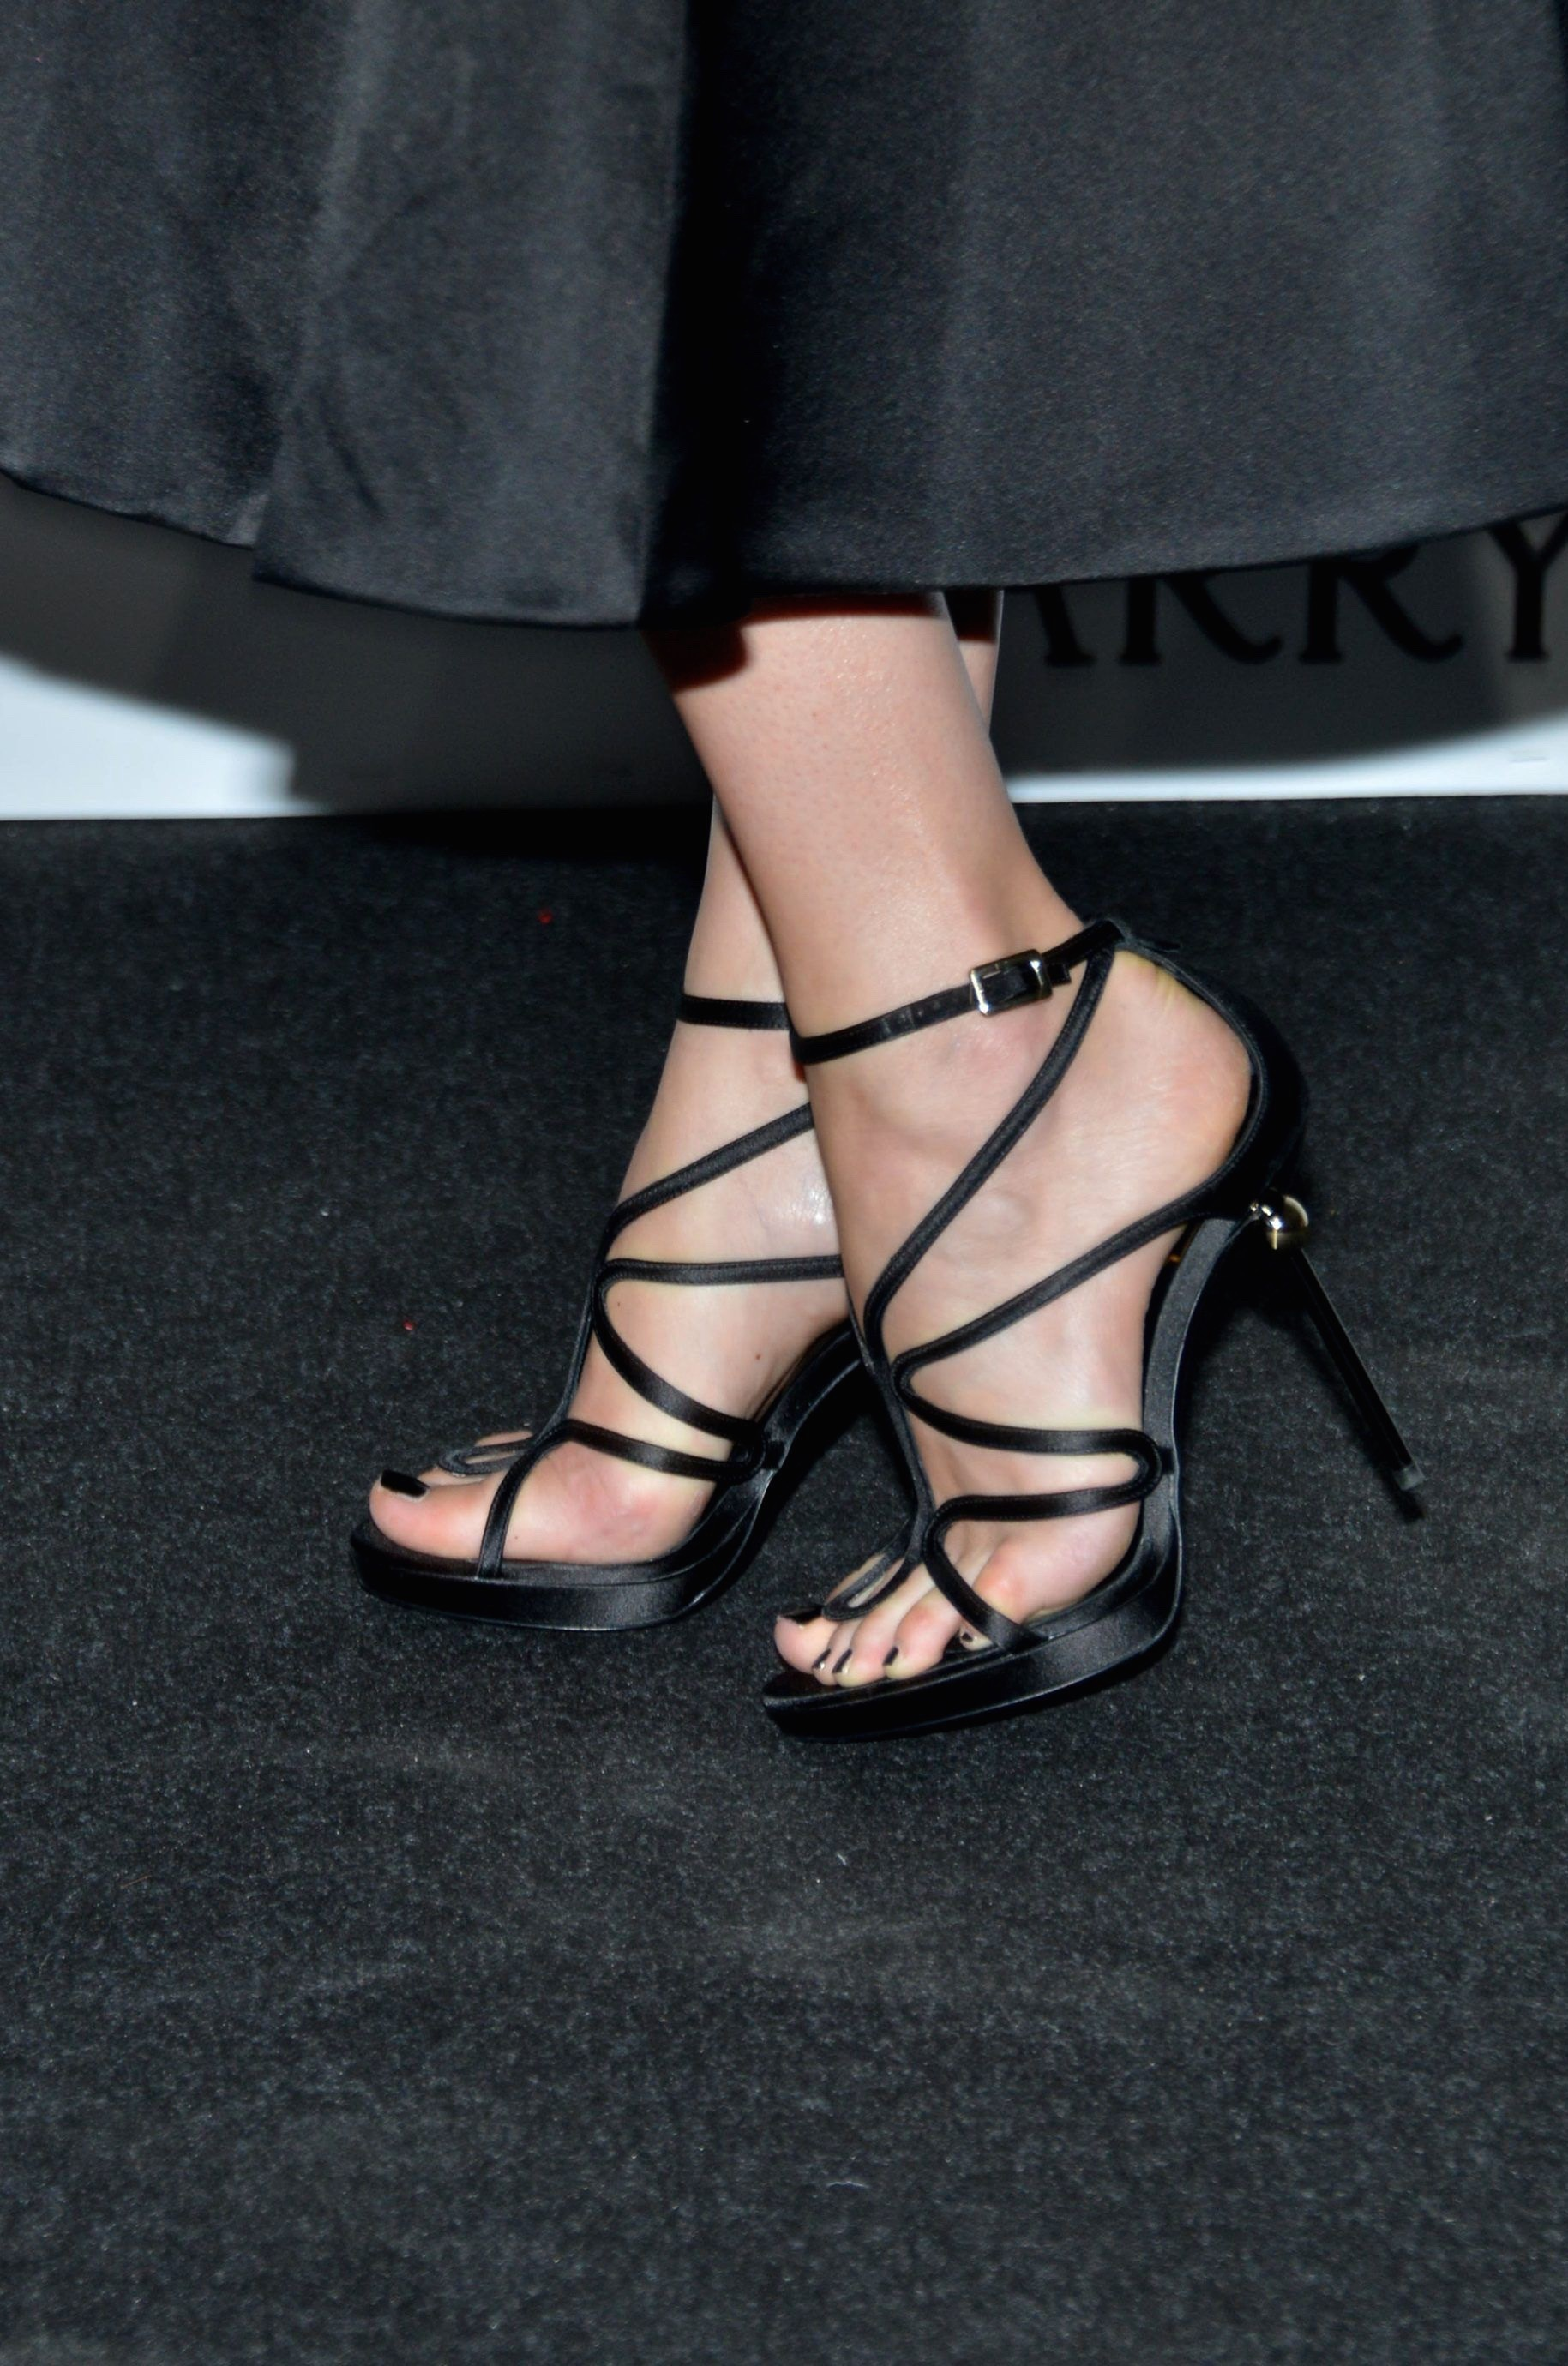 dakota johnson hot toes nails